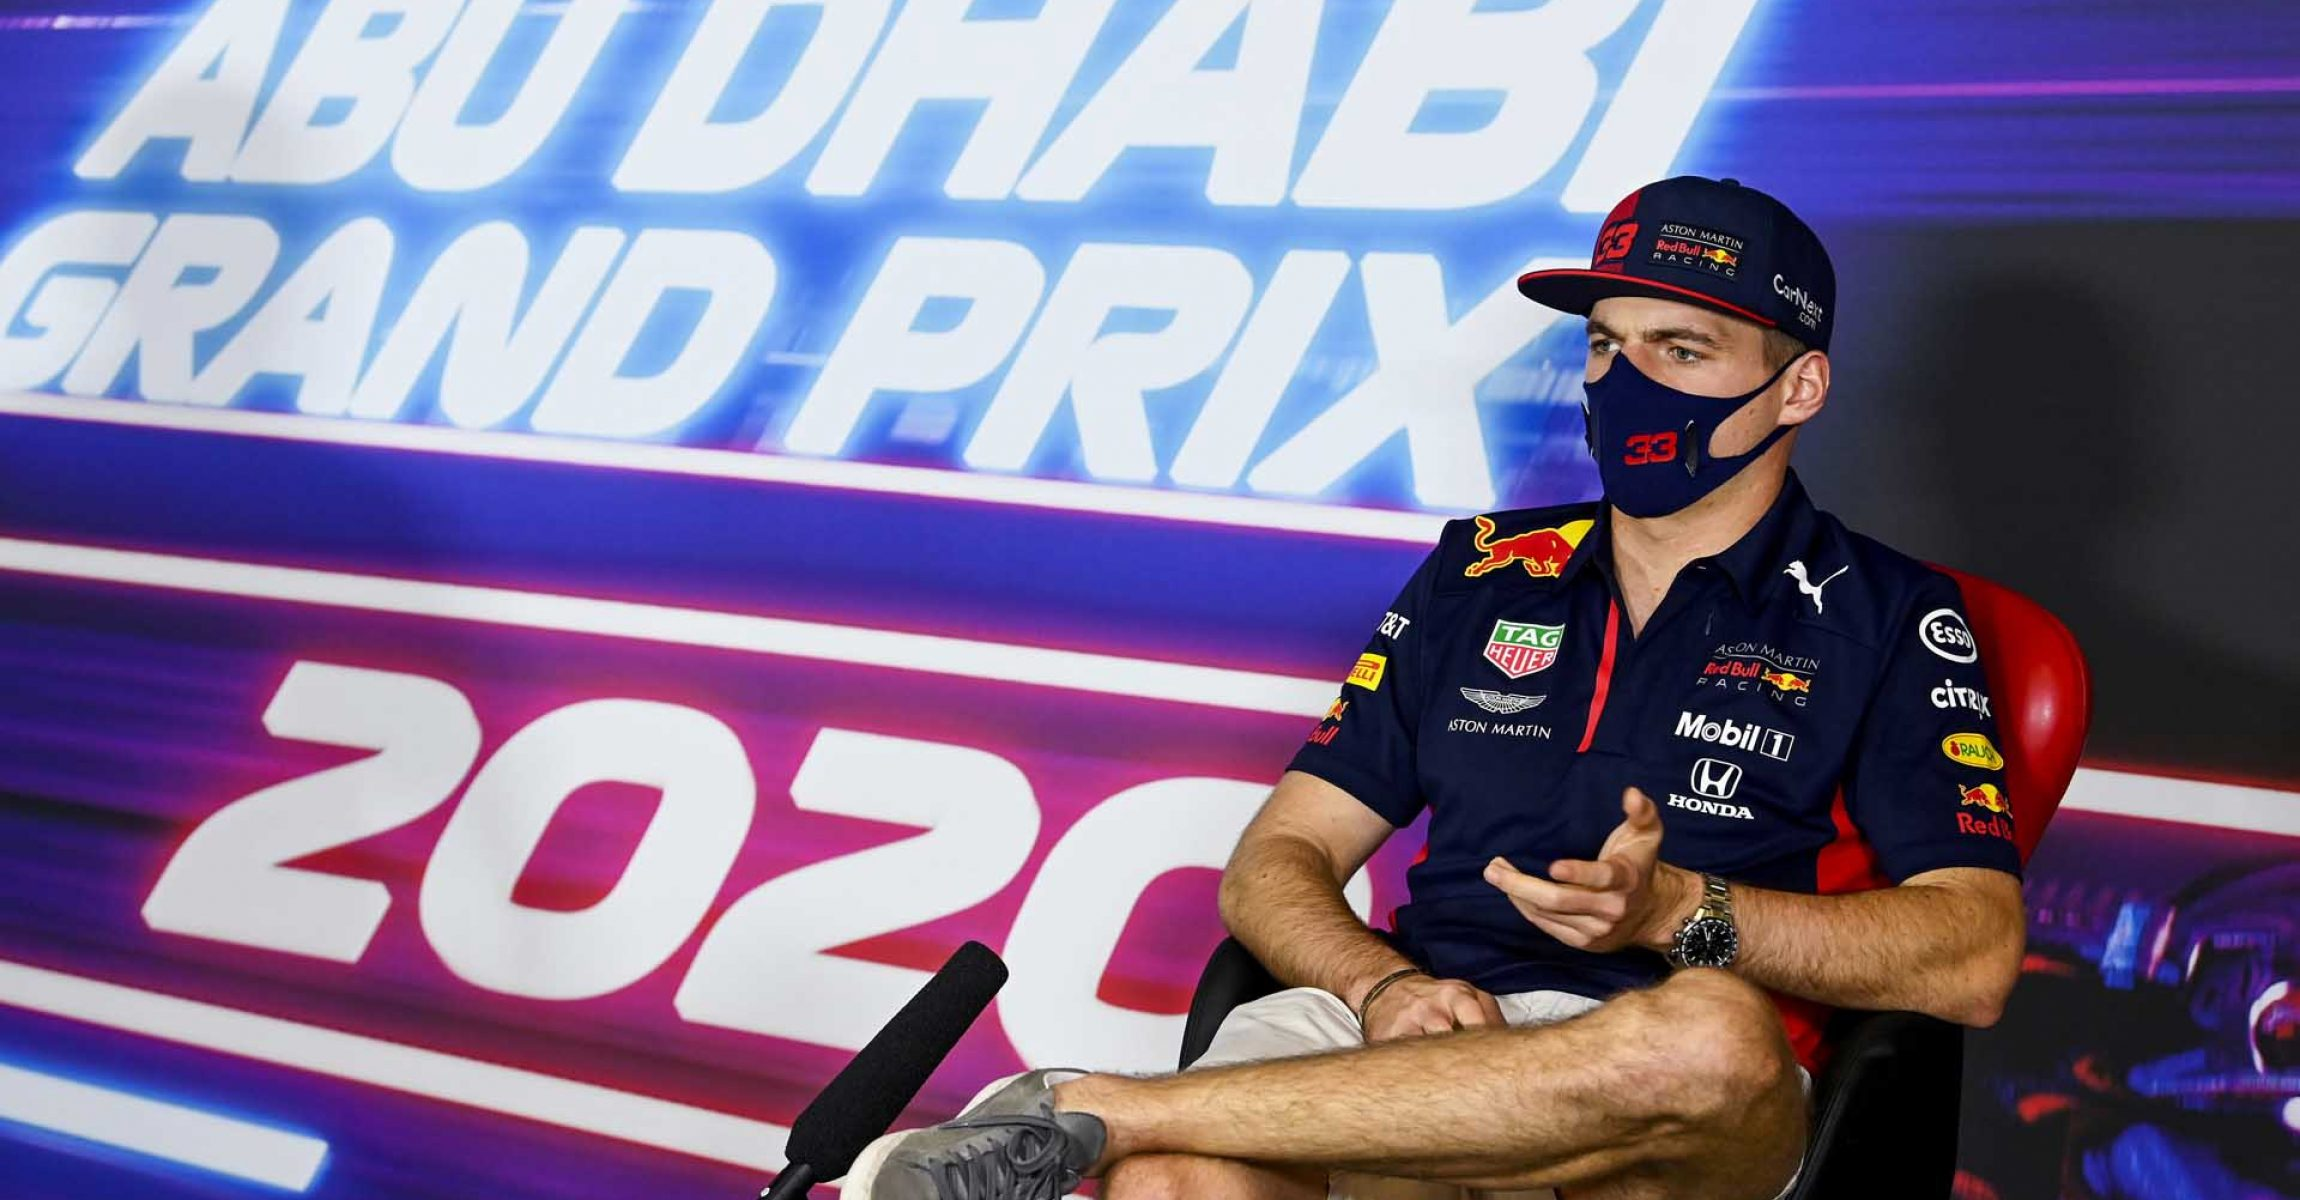 ABU DHABI, UNITED ARAB EMIRATES - DECEMBER 10: Max Verstappen of Netherlands and Red Bull Racing talks in the Drivers Press Conference during previews ahead of the F1 Grand Prix of Abu Dhabi at Yas Marina Circuit on December 10, 2020 in Abu Dhabi, United Arab Emirates. (Photo by Mark Sutton - Pool/Getty Images)